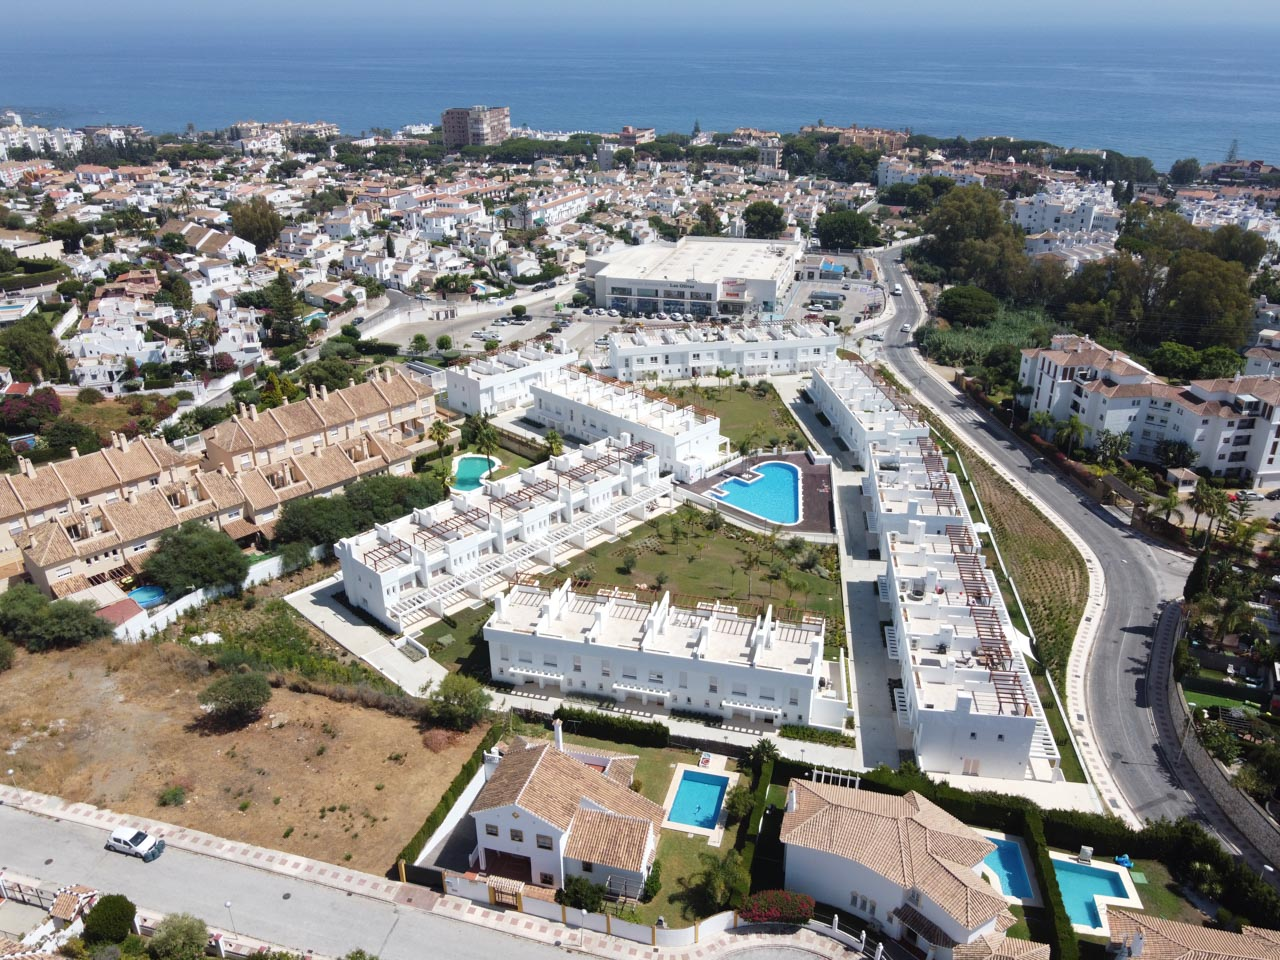 Aerial Drone Real Estate Photography - Urbanisation development in Calahonda, Mijas Costa, Spain